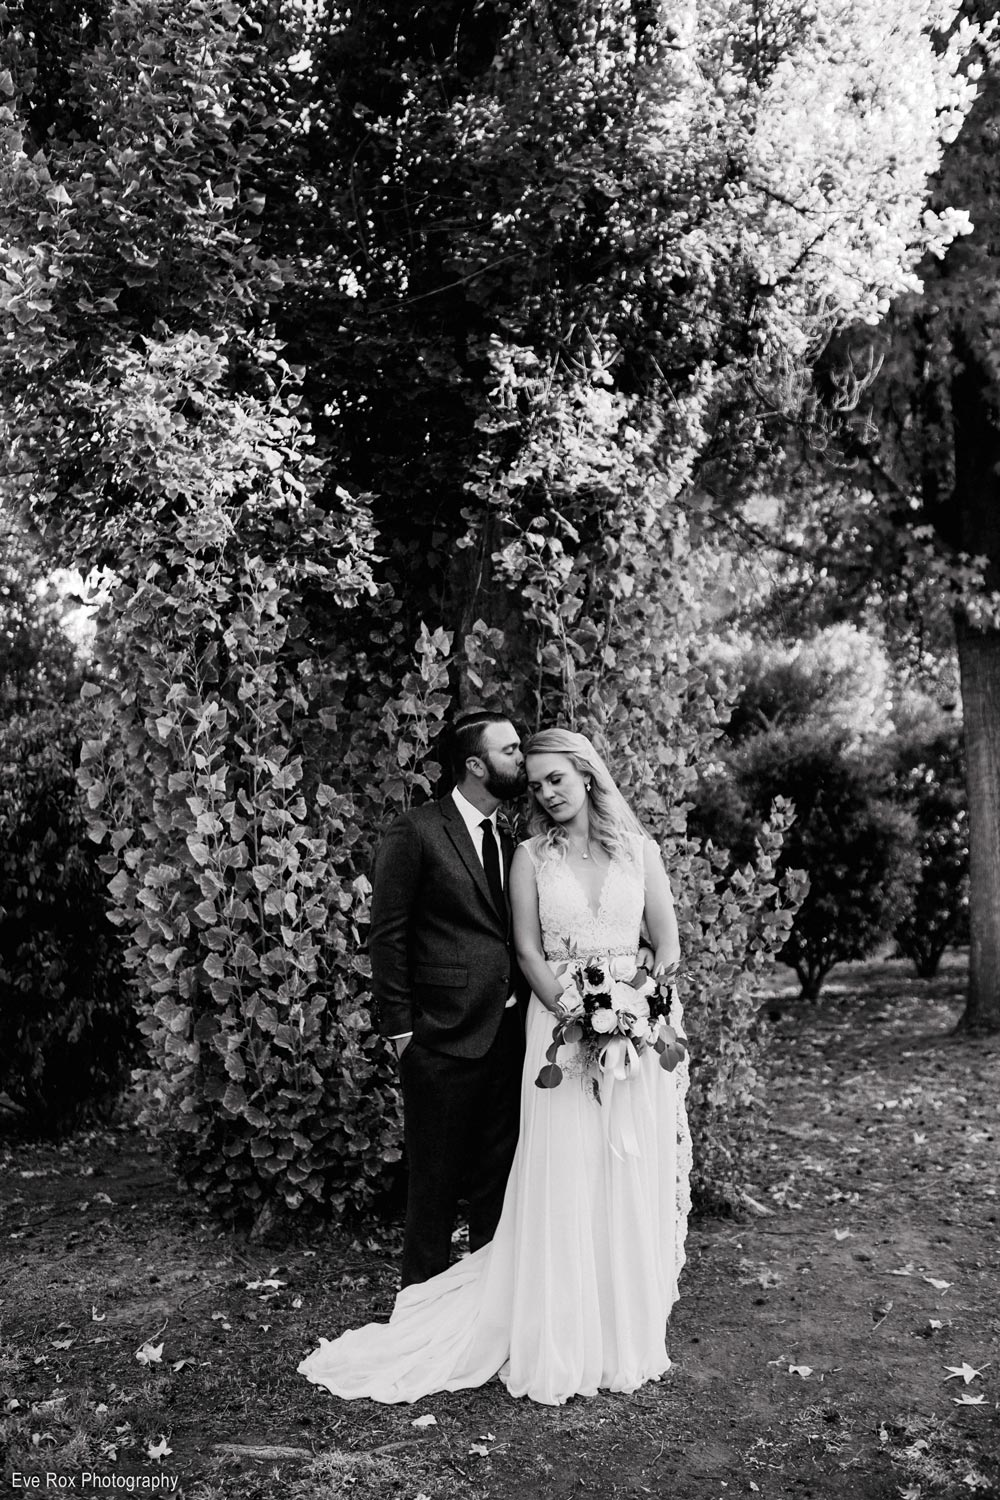 Couple-Amongst-Trees-Eve-Rox-Photography copy.jpg